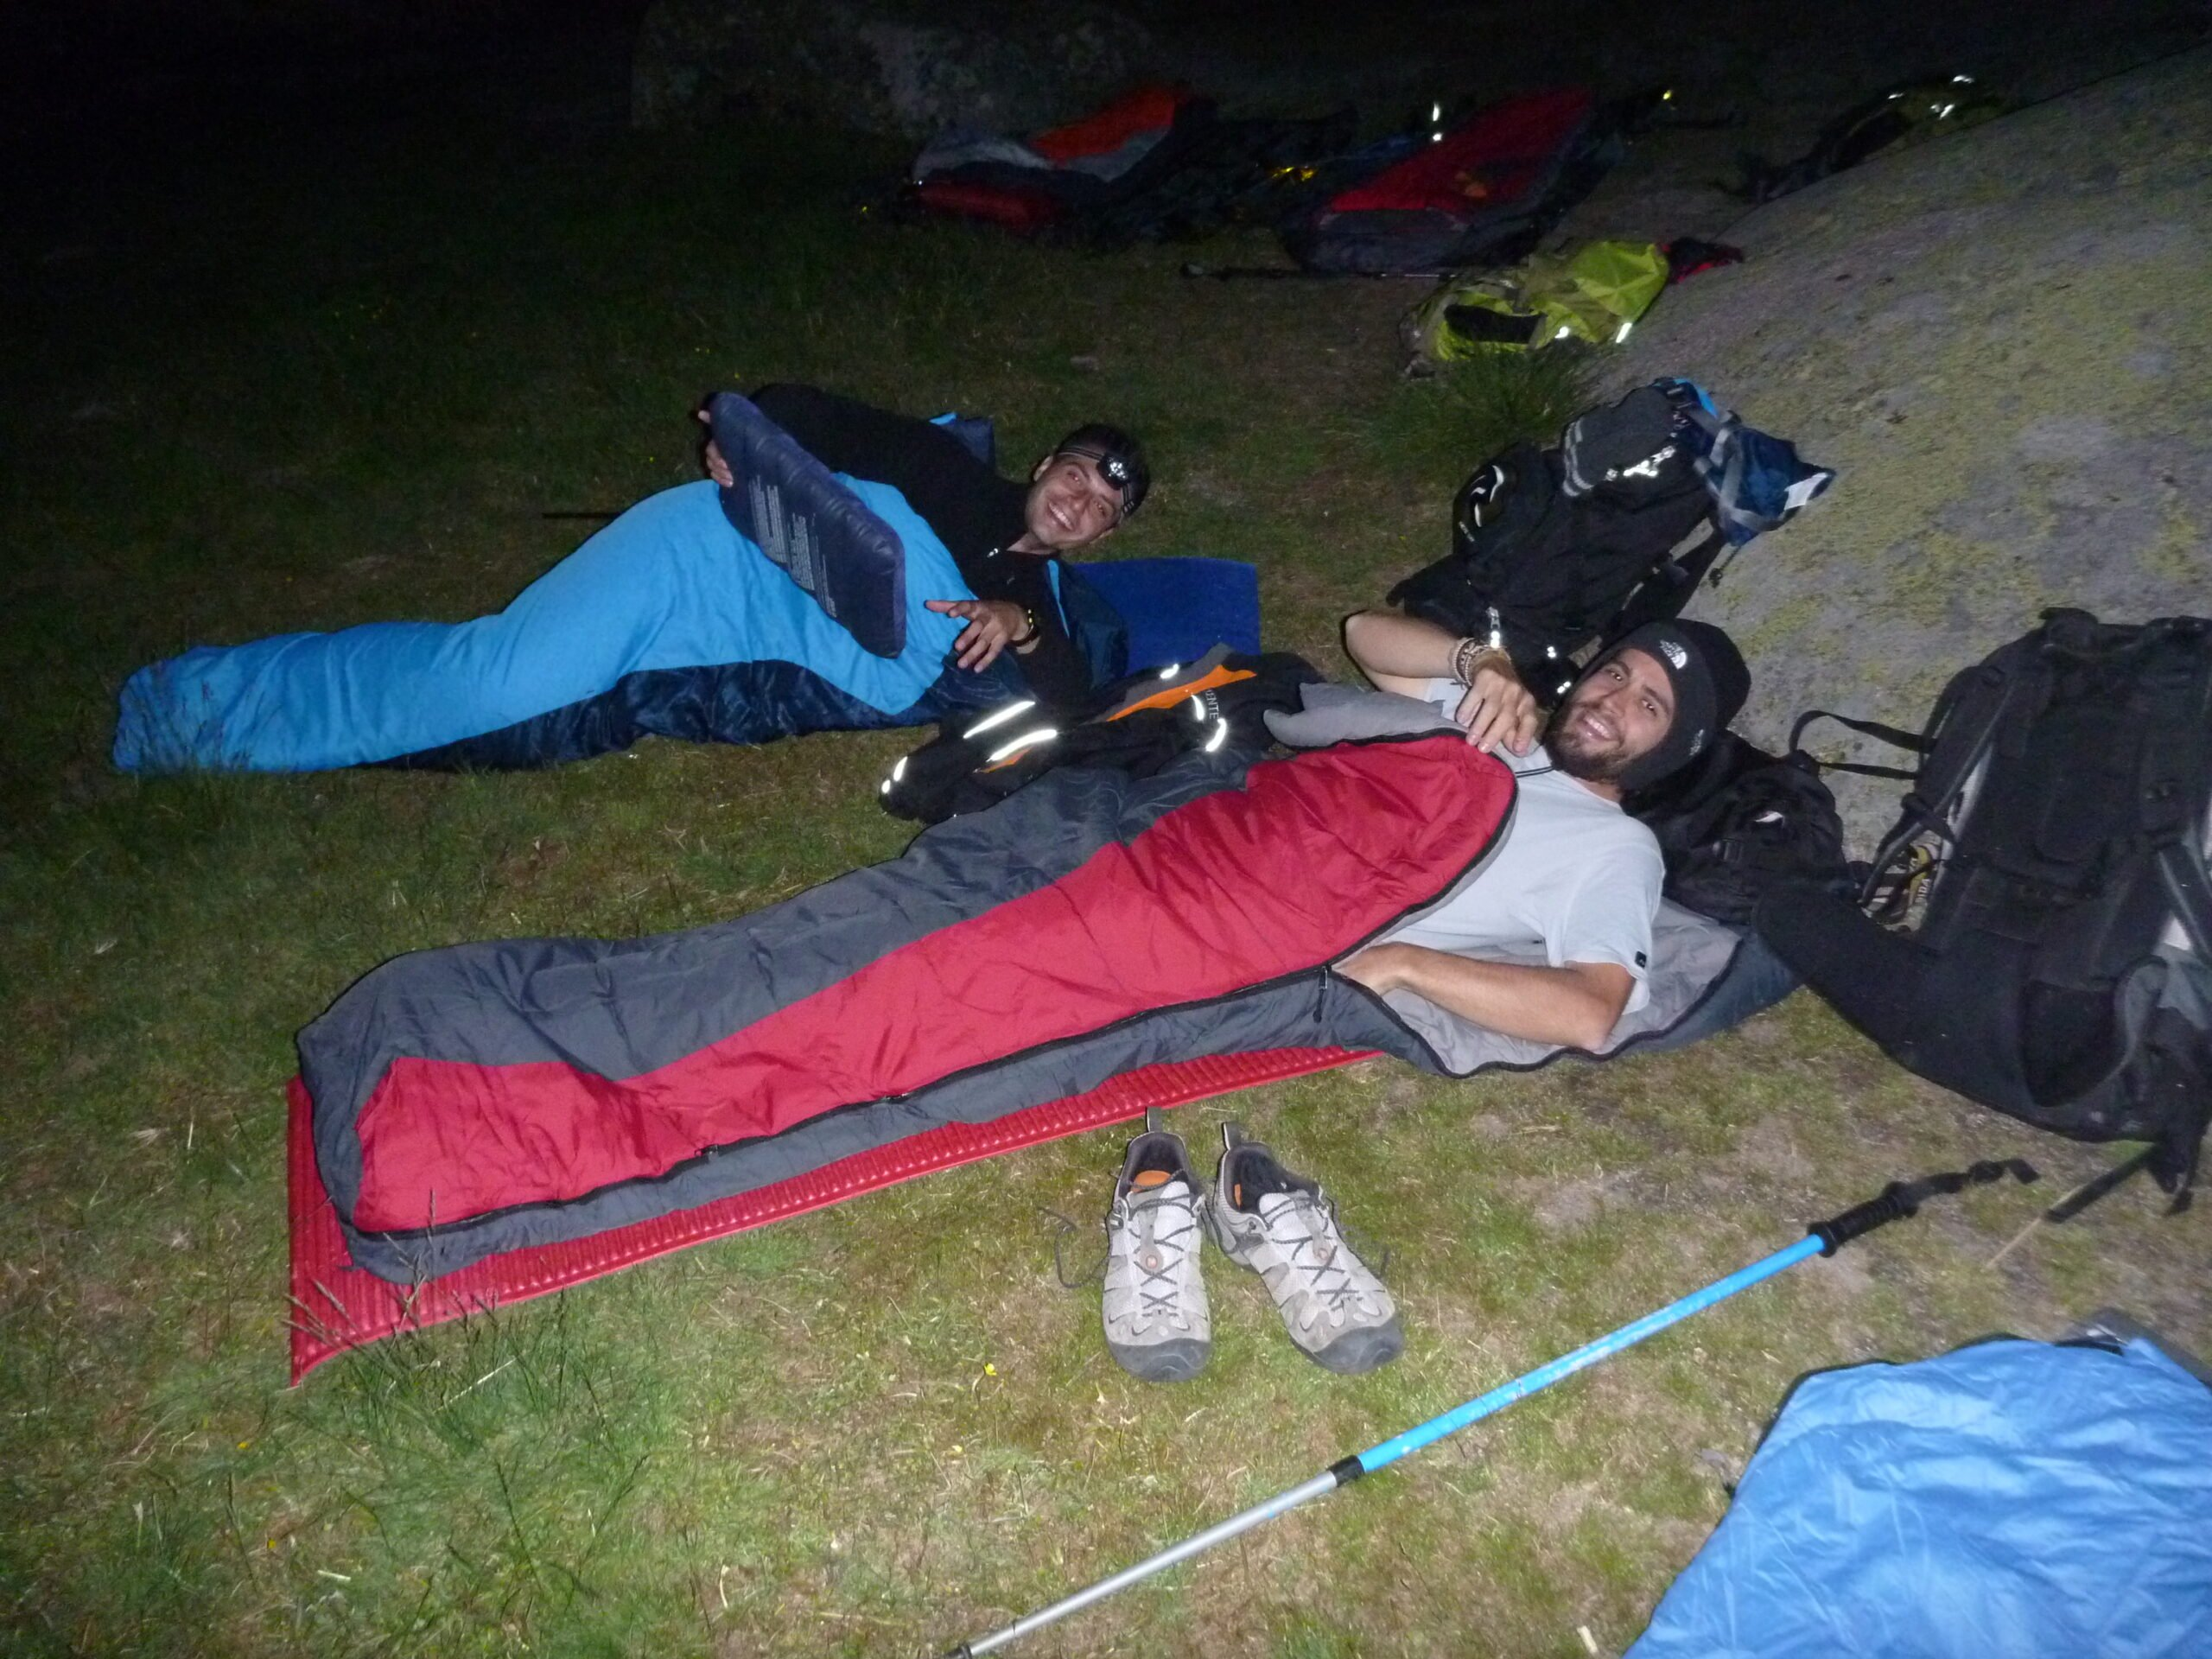 Spend 1 Overnight In Bivouac Only With Sleeping Bag And Pad Under The Endless Starry Sky.